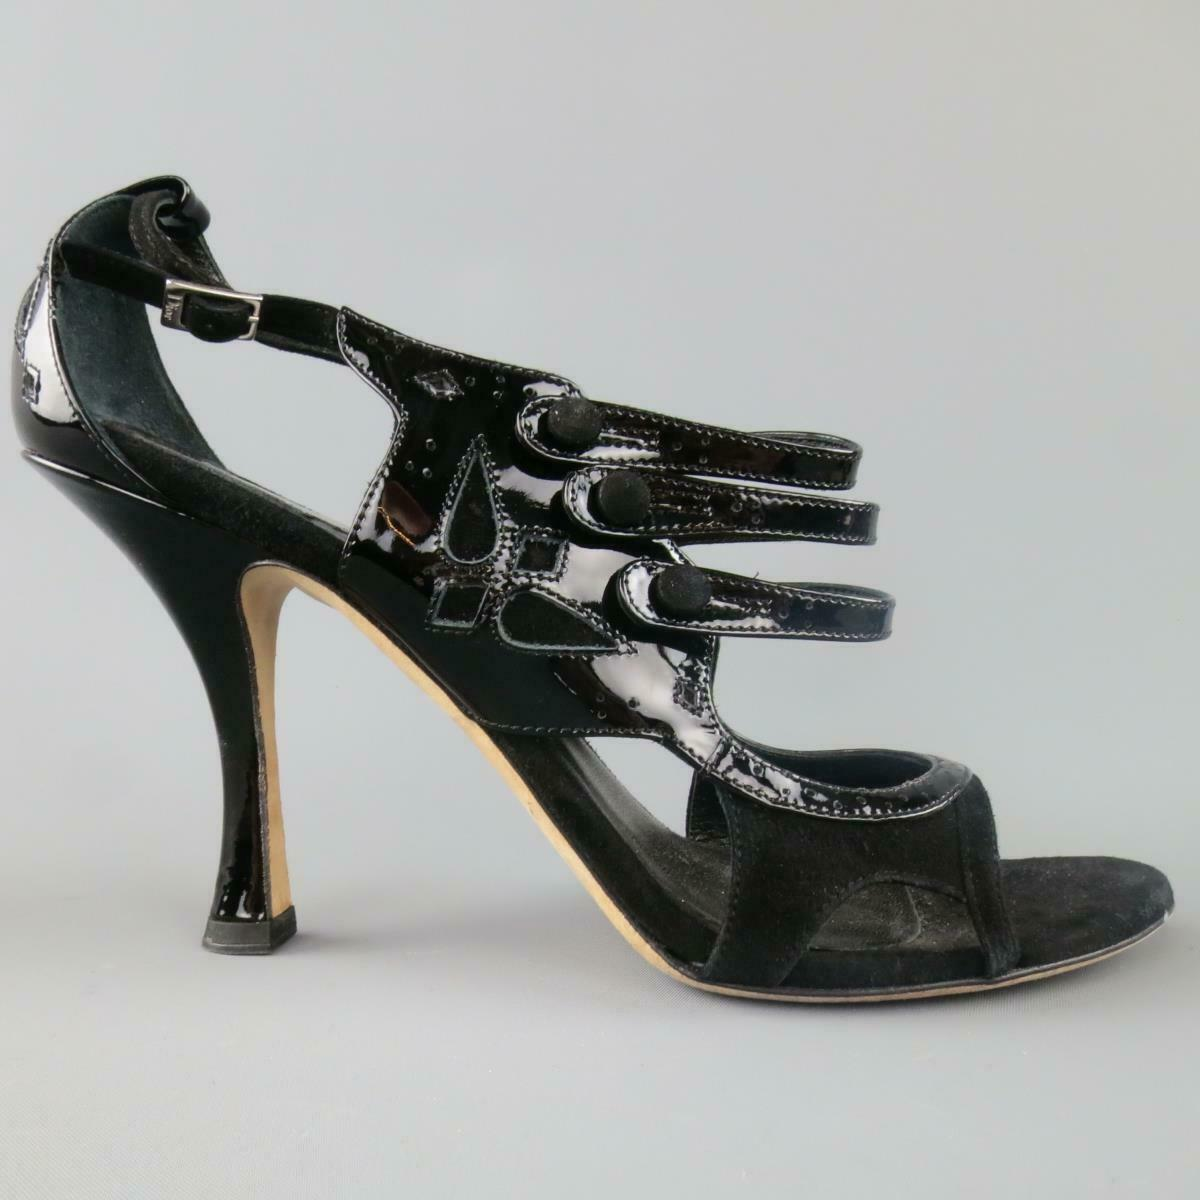 CHRISTIAN DIOR Size 11 Black Patent Leather Mary Mary Mary Jane Sandals 955617